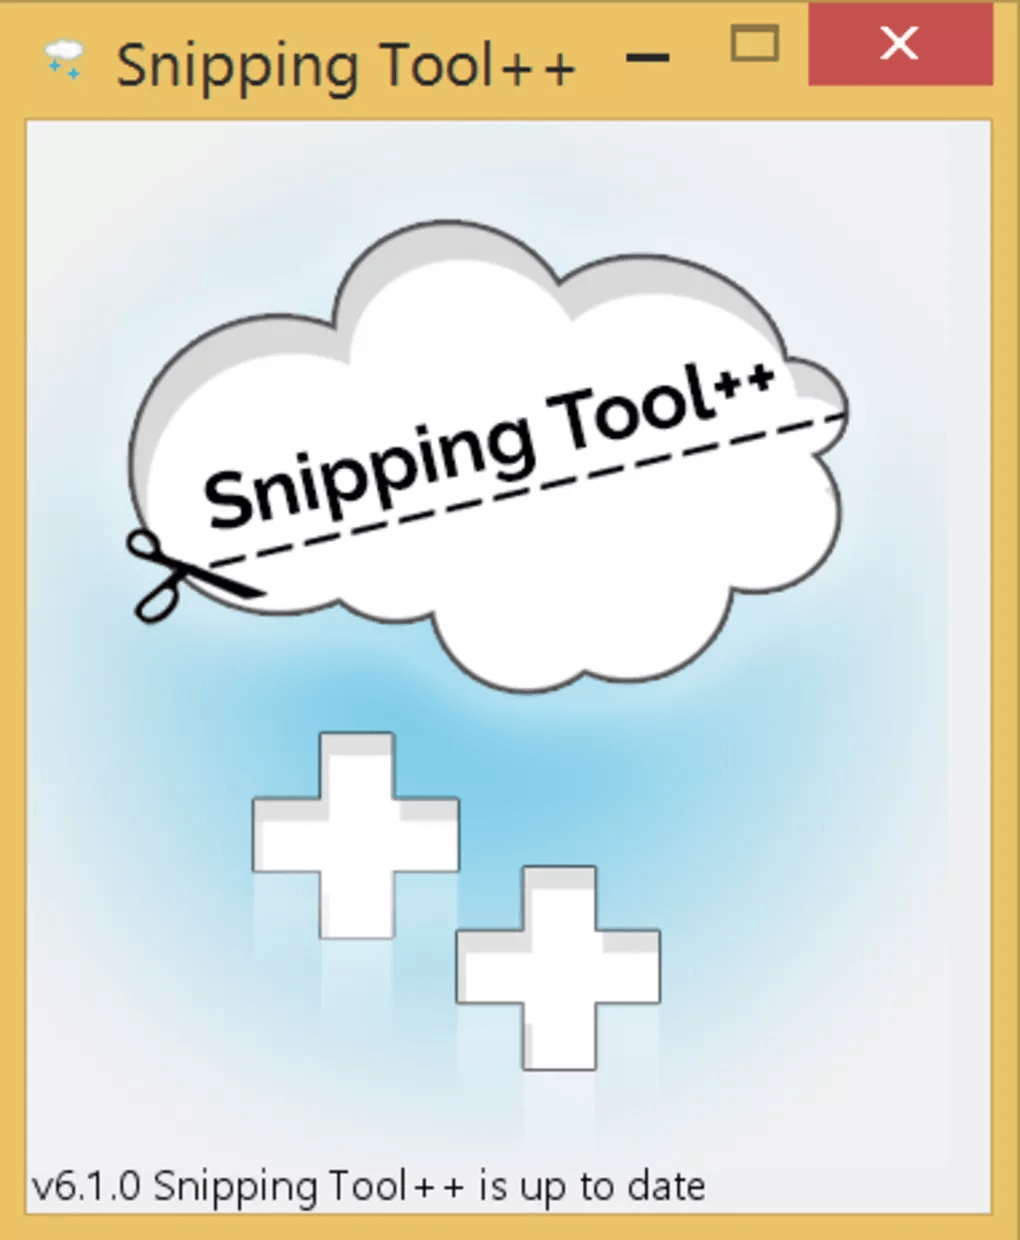 Snipping Tool ++